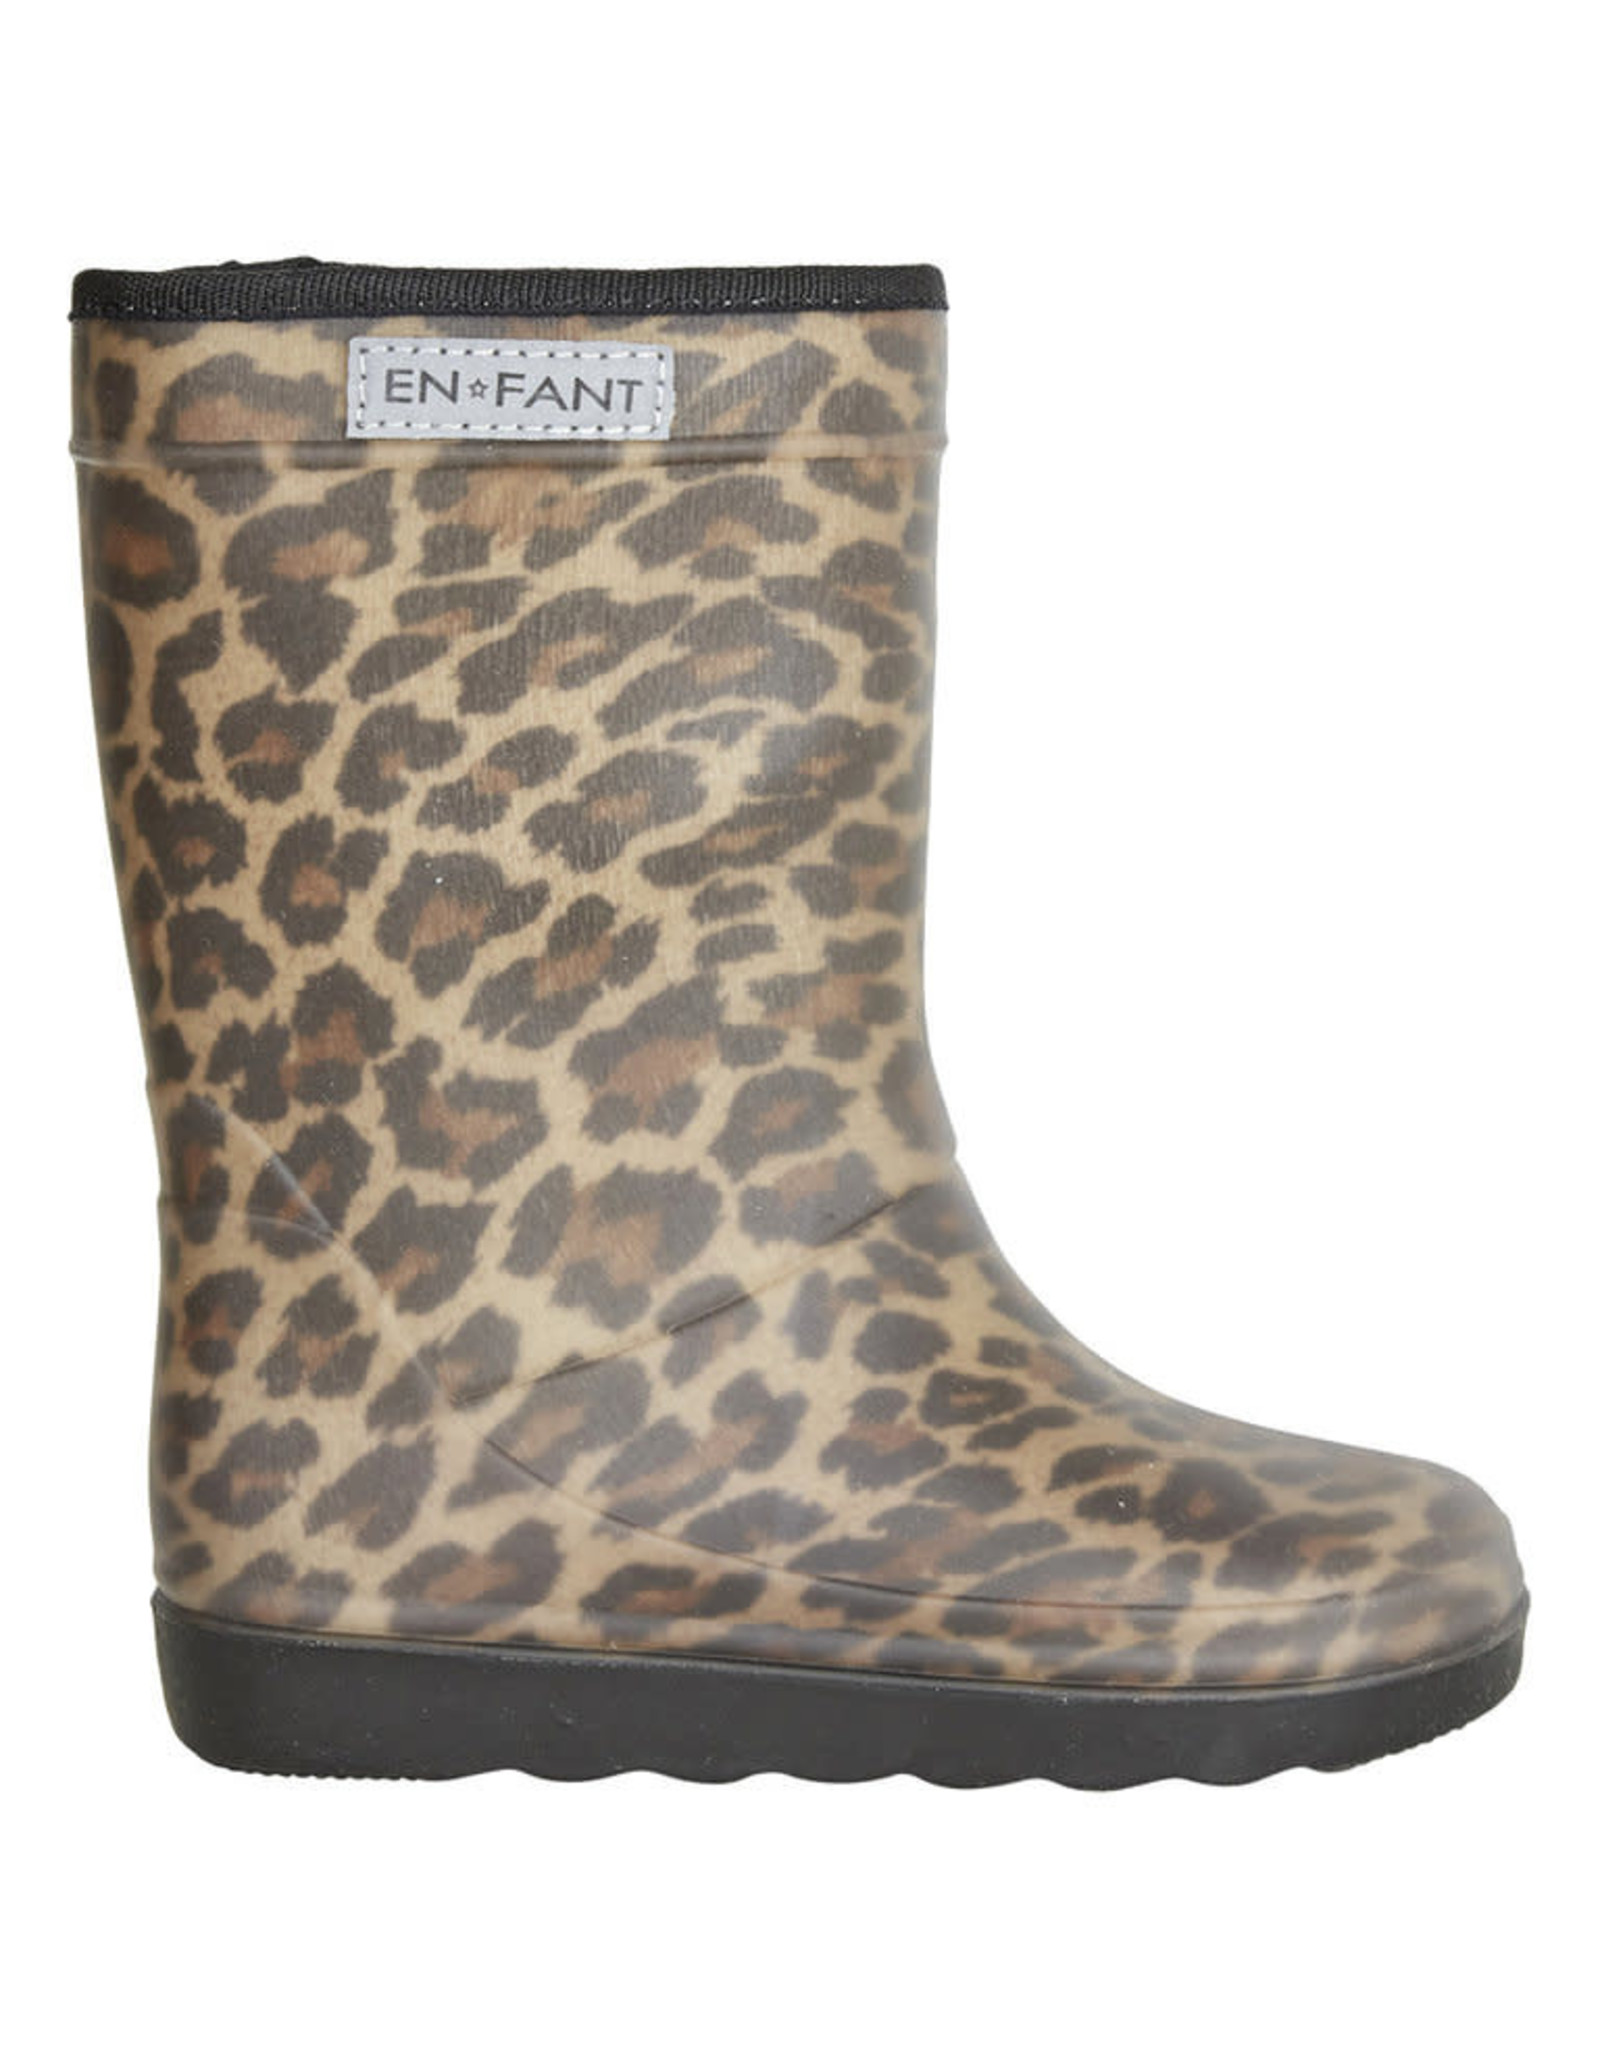 Enfant Thermo boot -  Leo brown